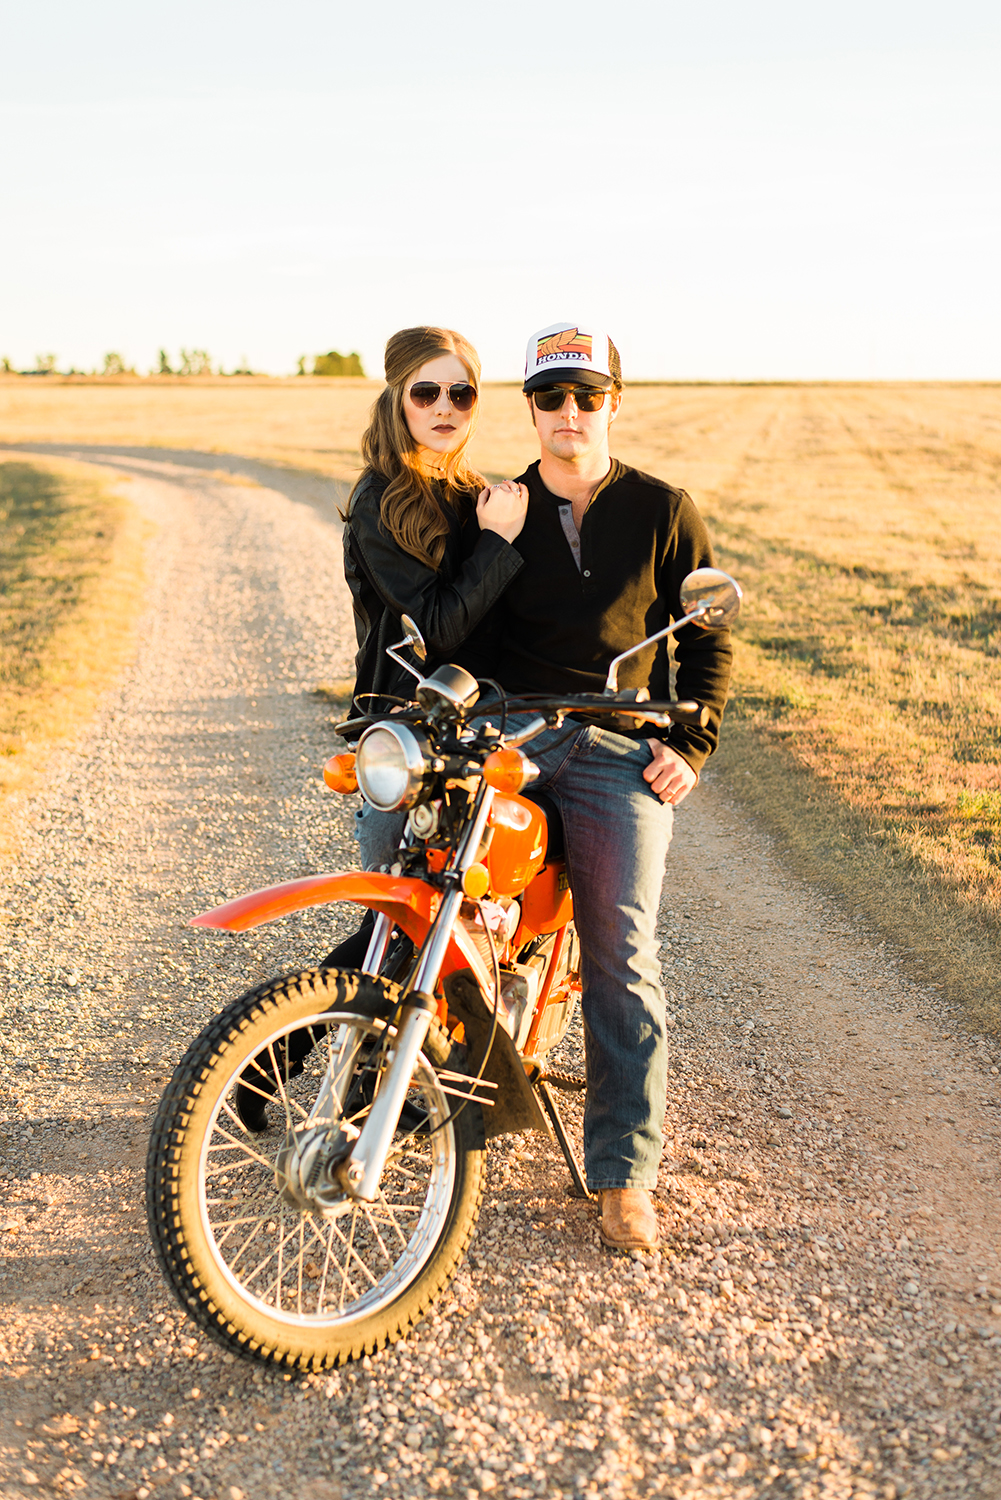 edgy-motorcyle-couple-shoot-denver-photographer-17.jpg